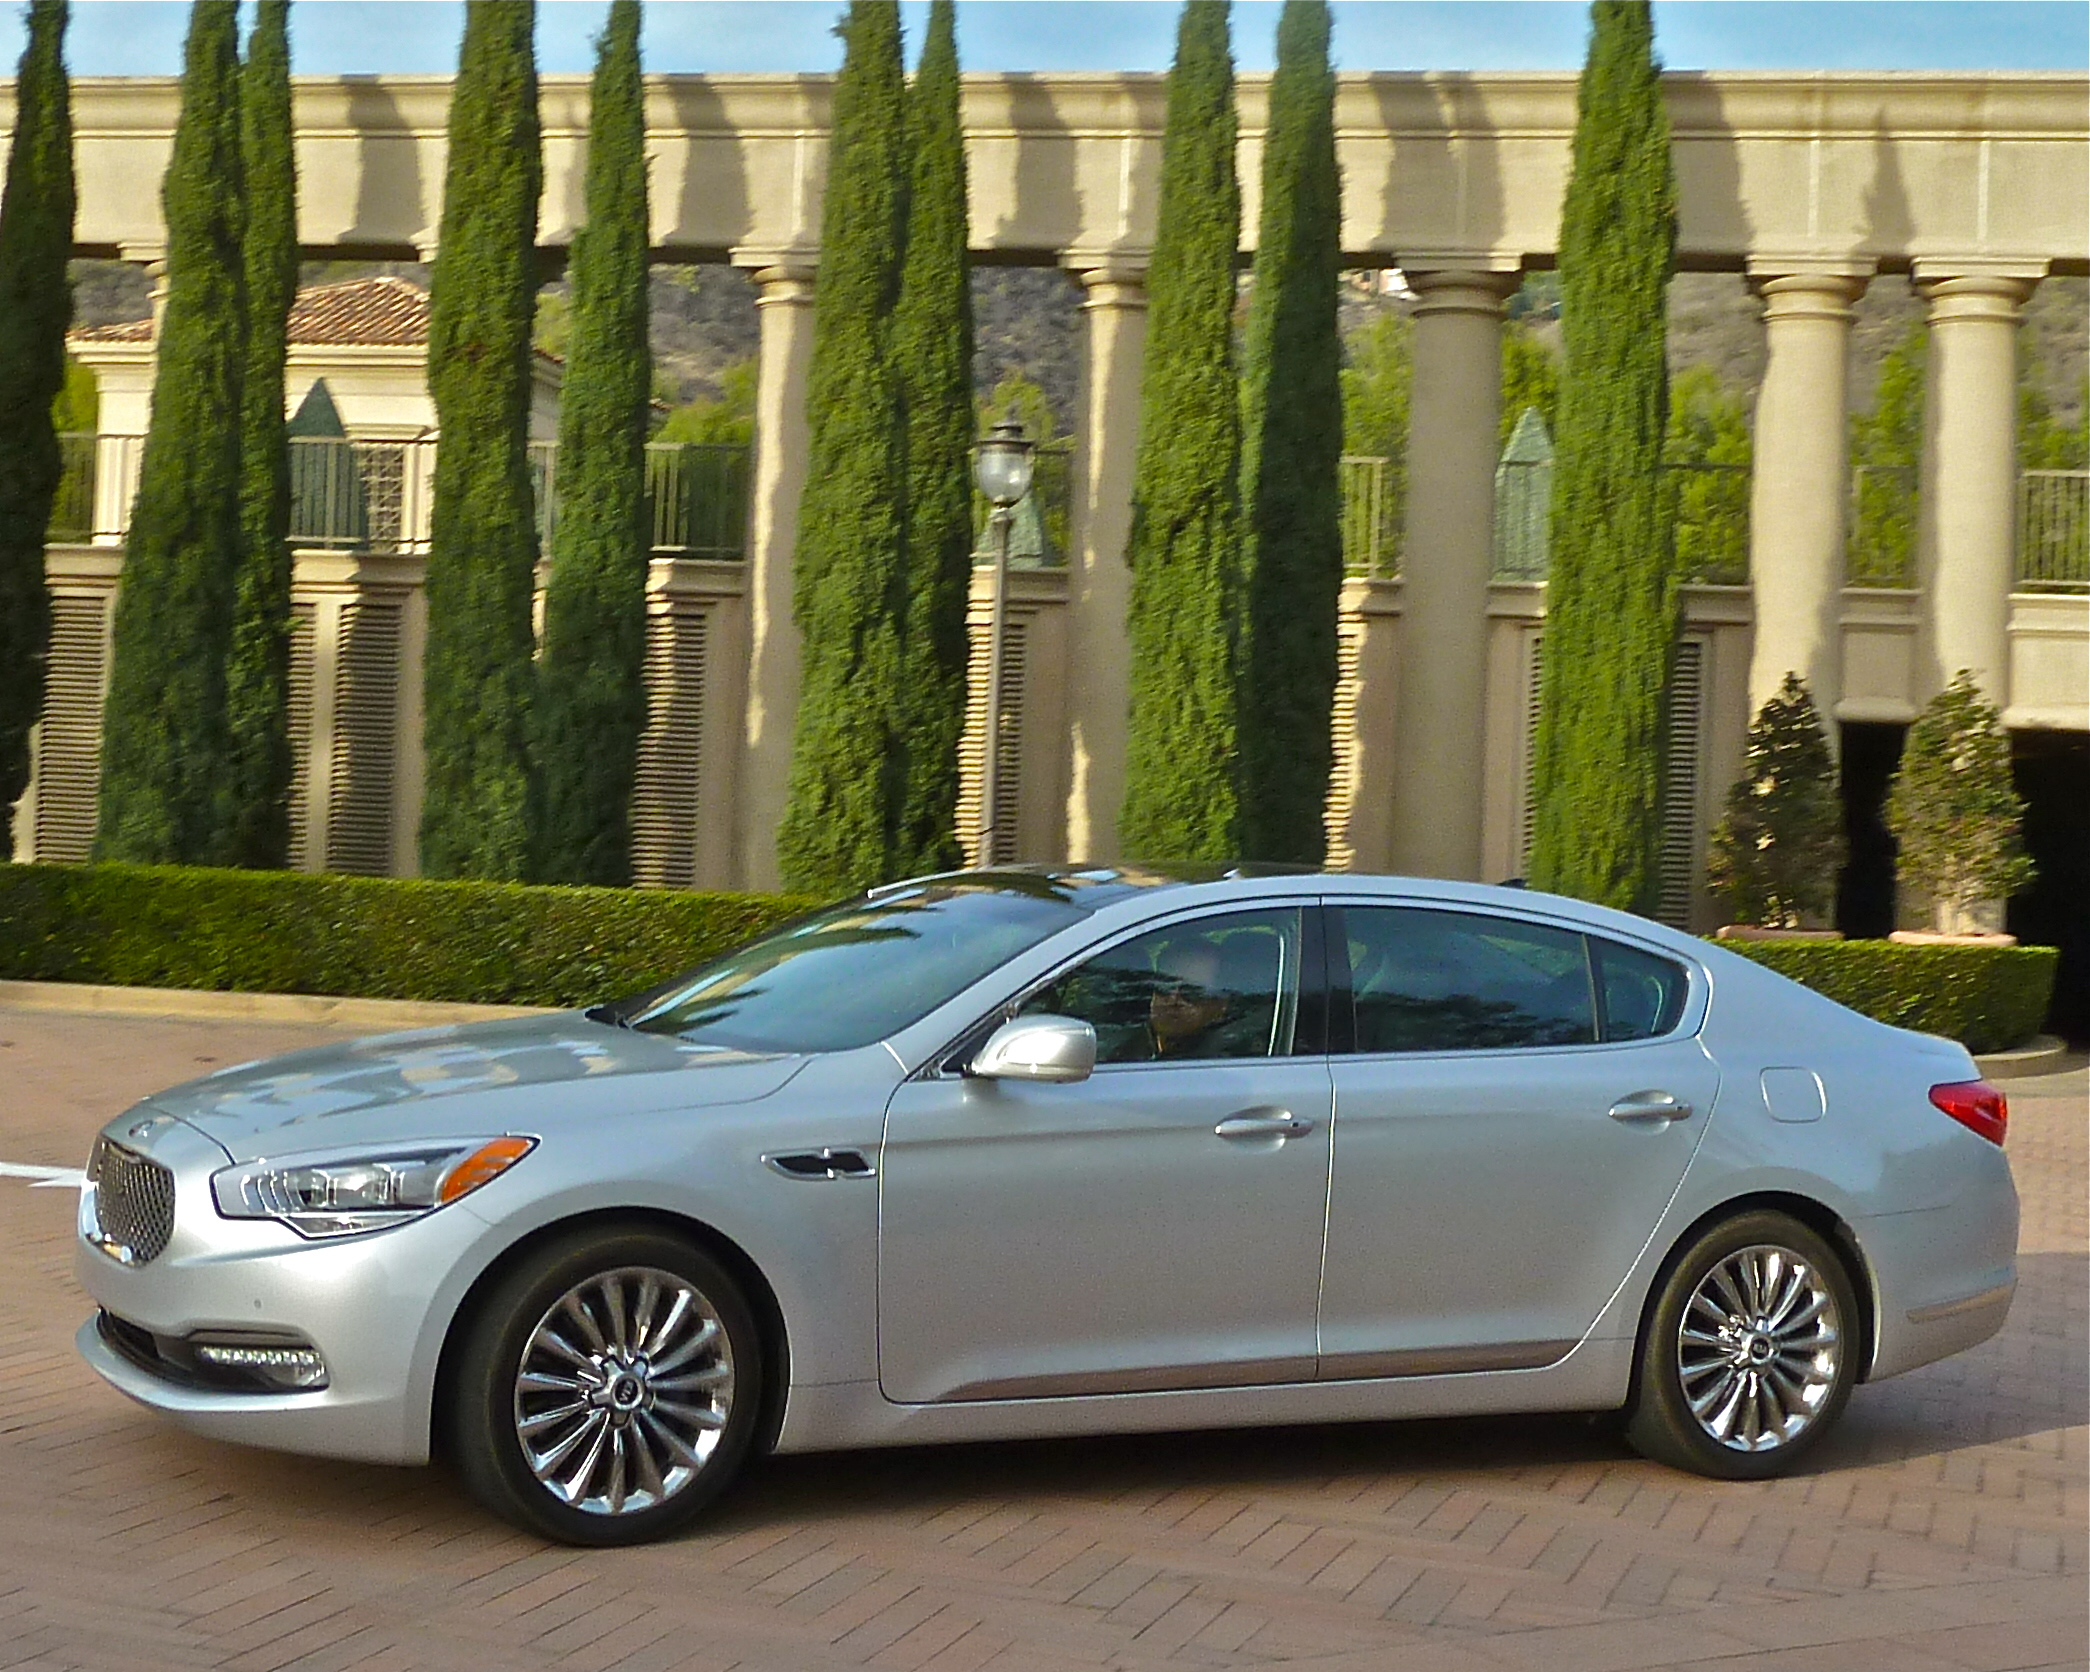 The Resort at Pelican Hills, Newport Coast, California, gave Kia's K900 a perfect backdrop.